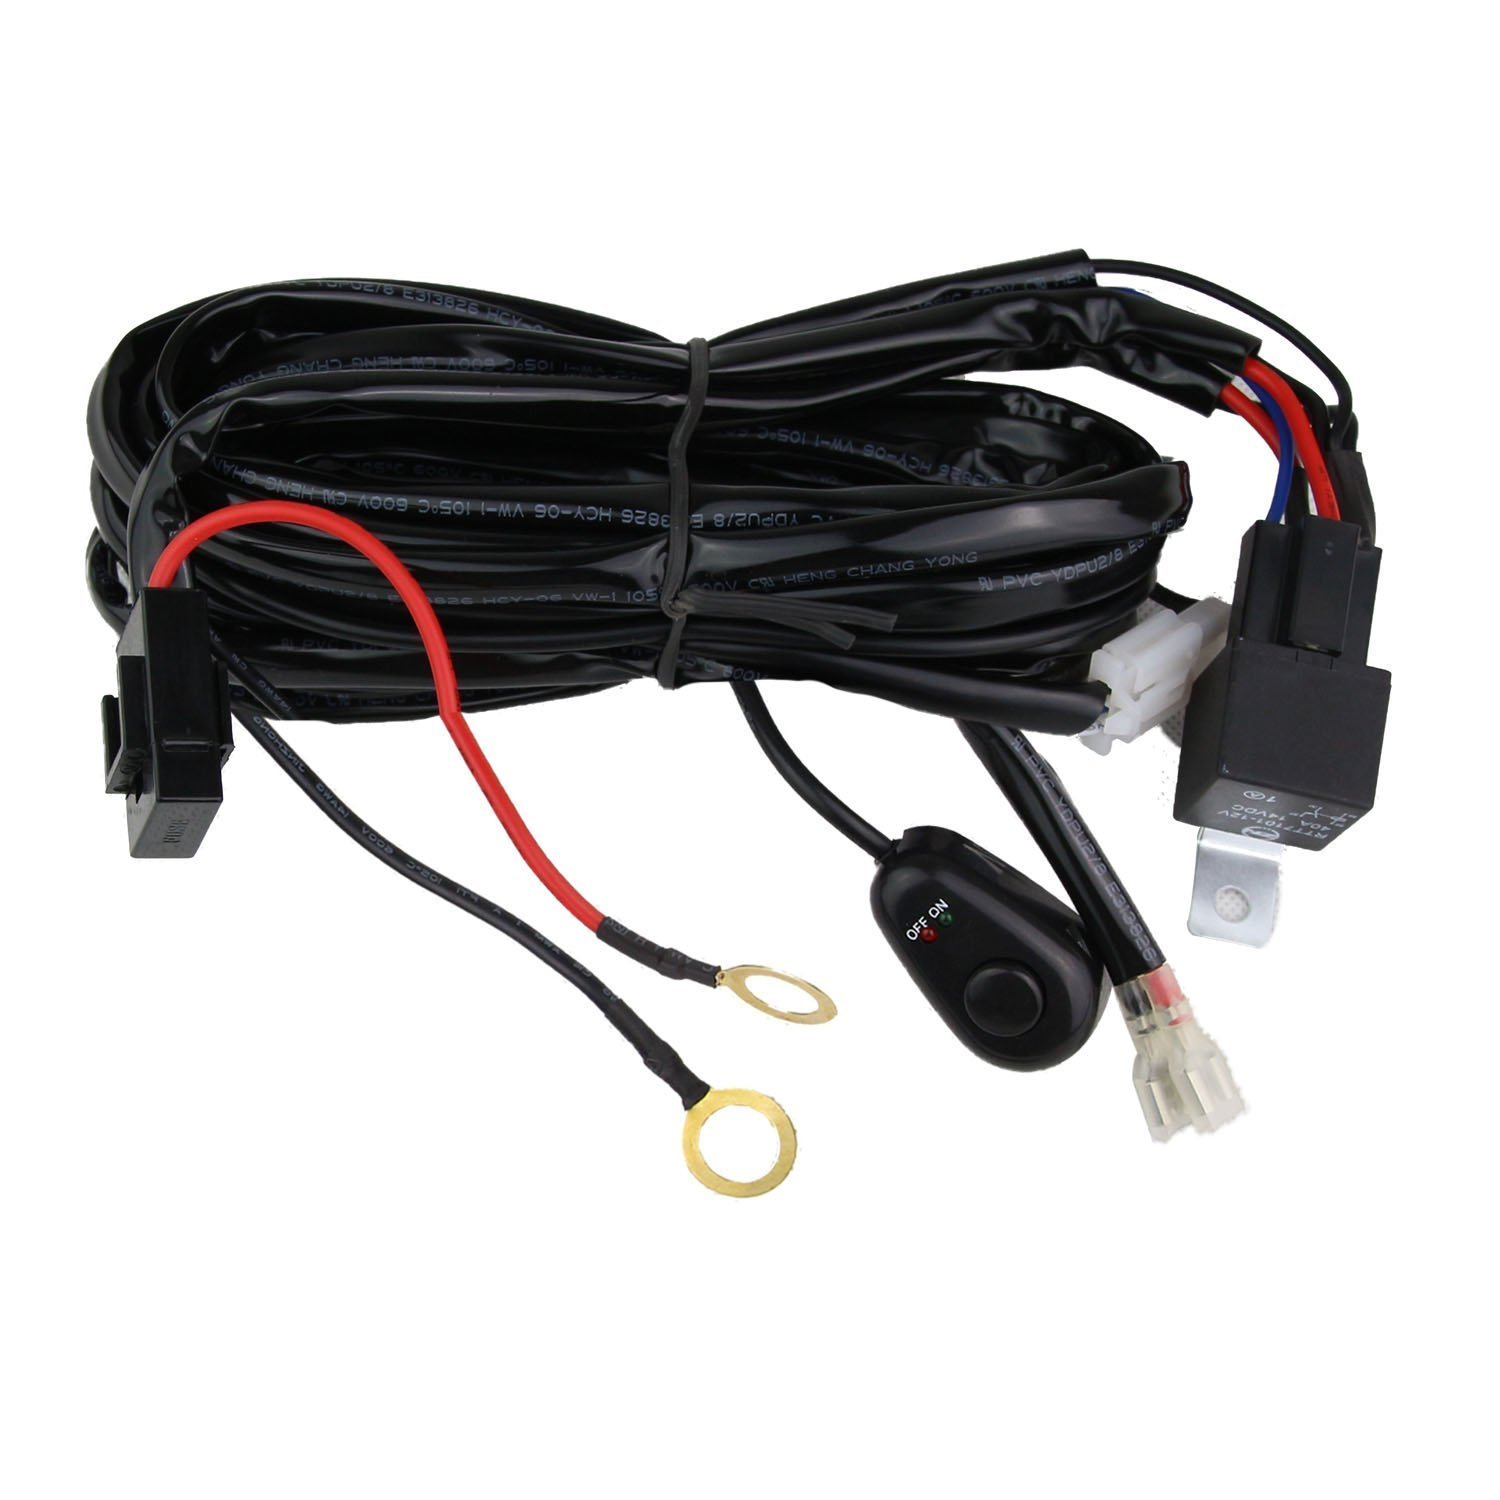 71xZ3MgxymL._SL1500_ amazon com northpole light led light bar wiring harness, 12v 40a Universal Wiring Harness Diagram at gsmx.co